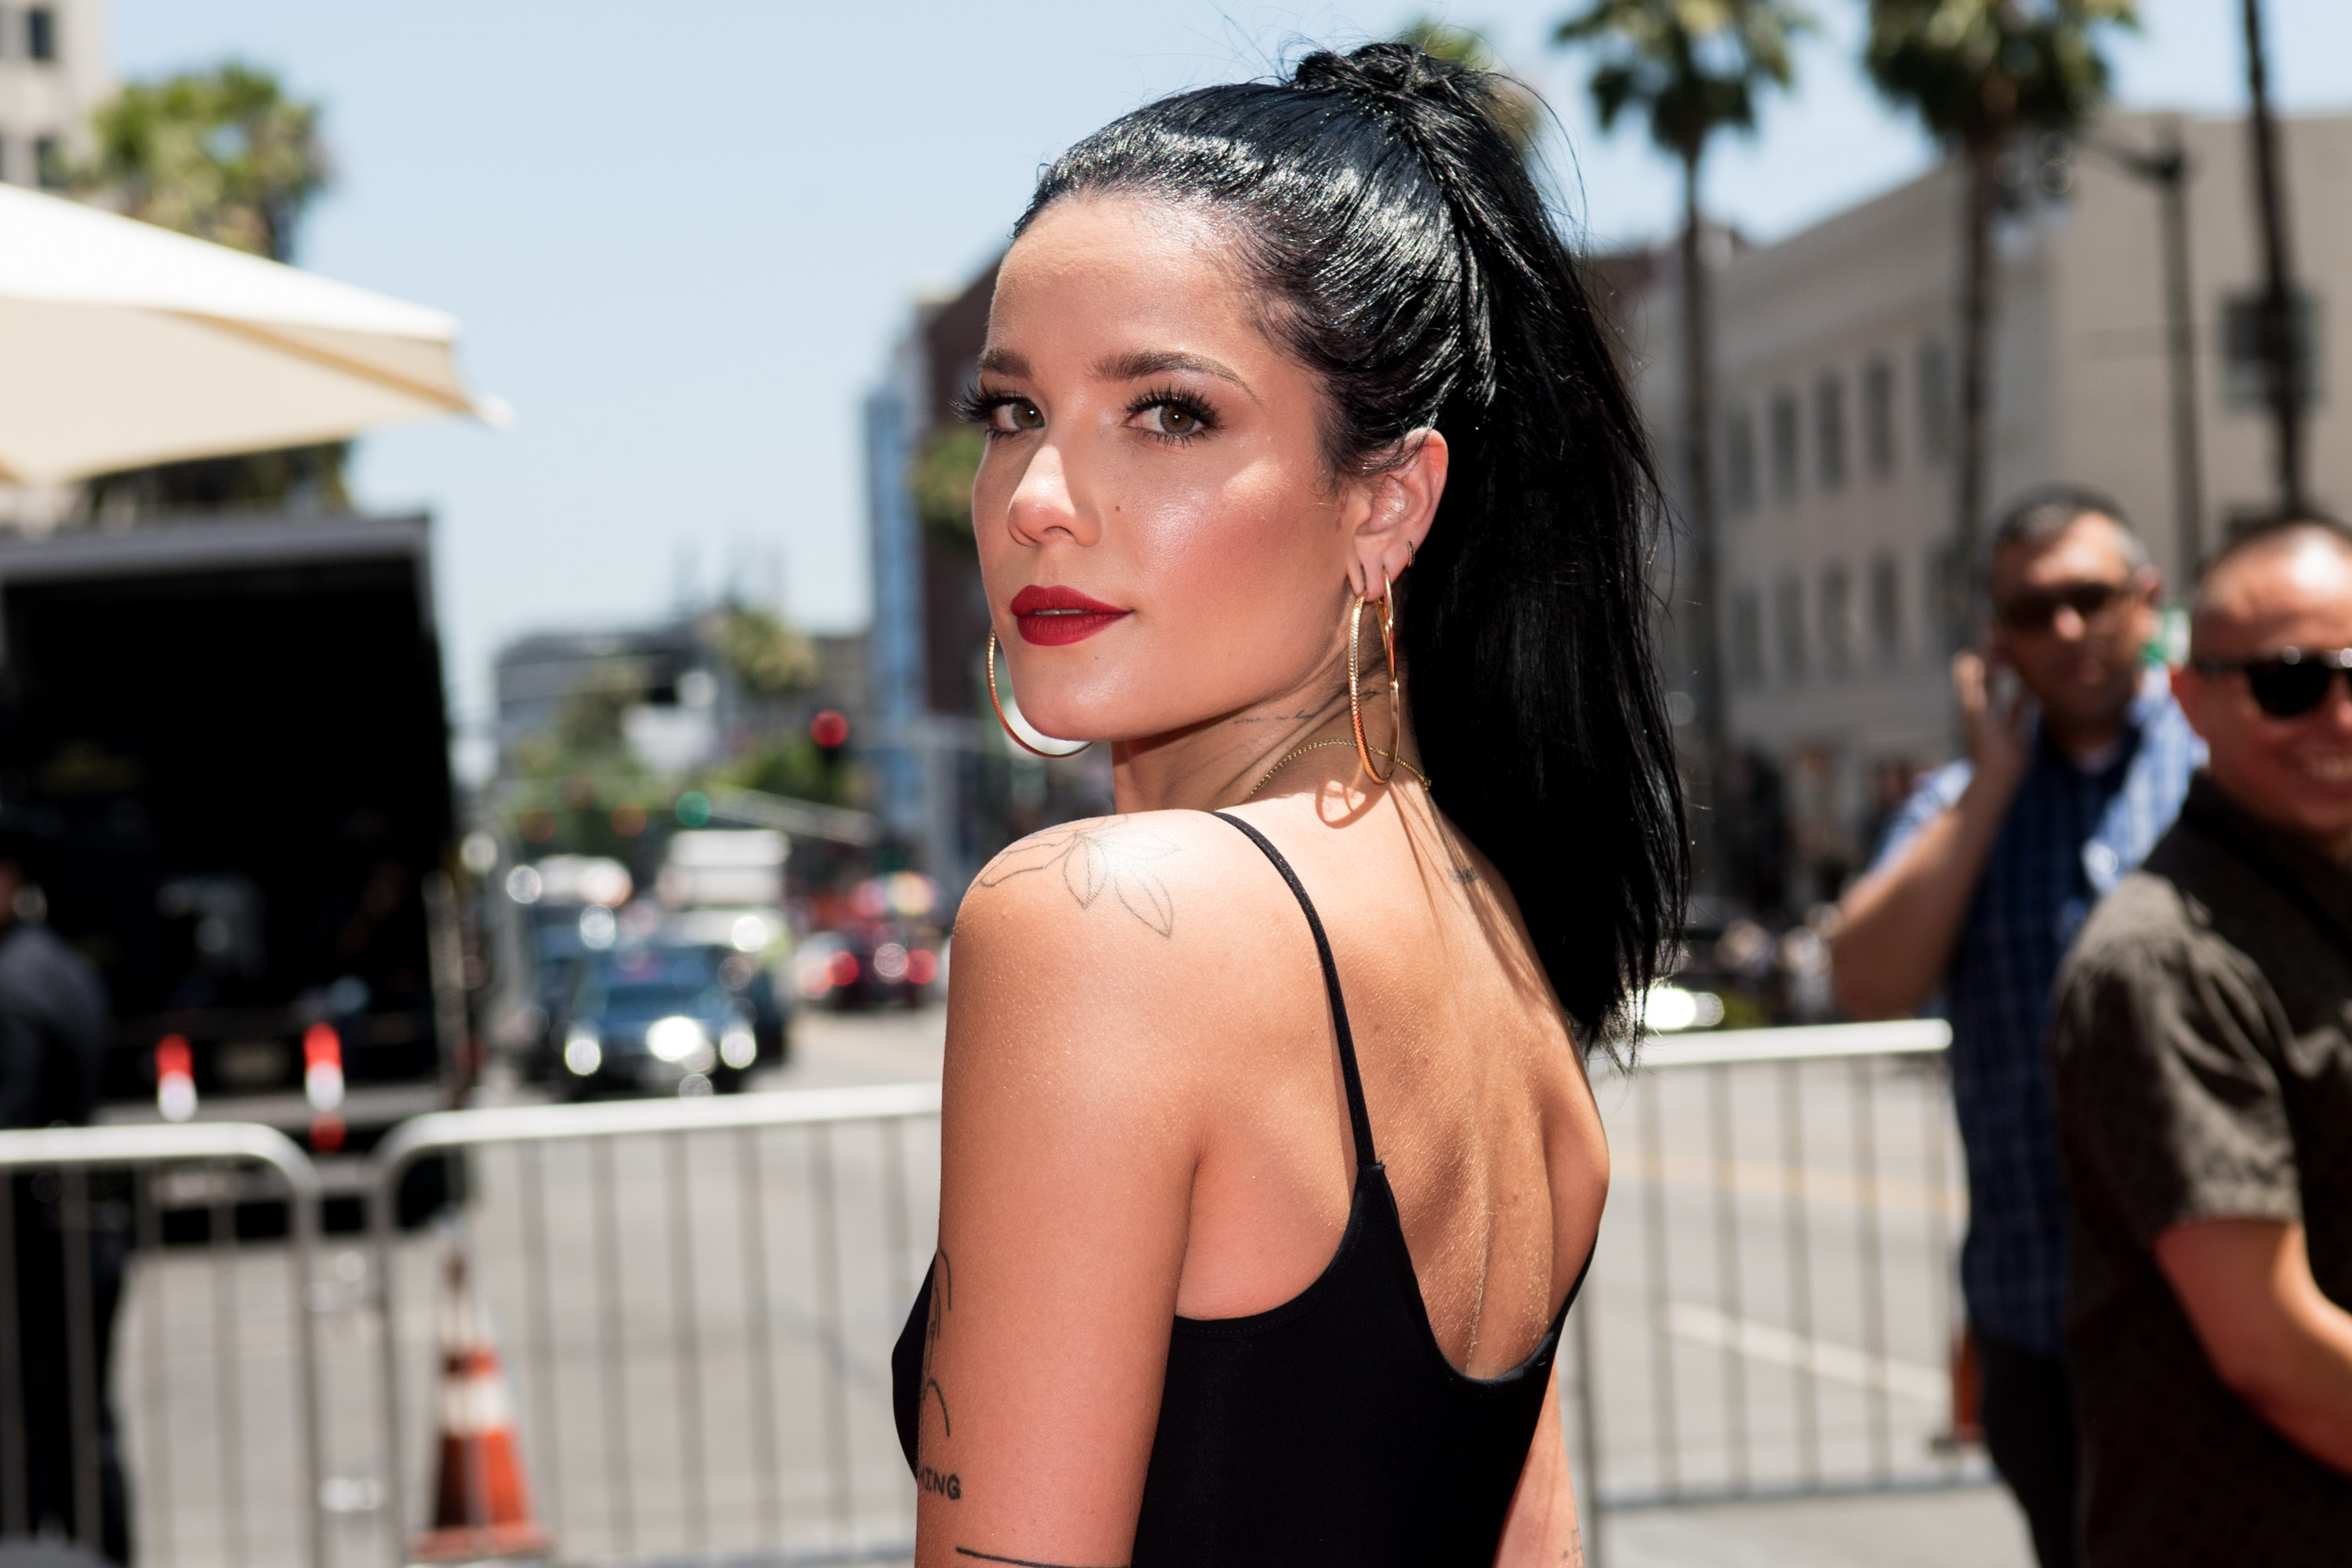 Who Did Halsey Date Before G-Eazy? Here's Who The Singer Has